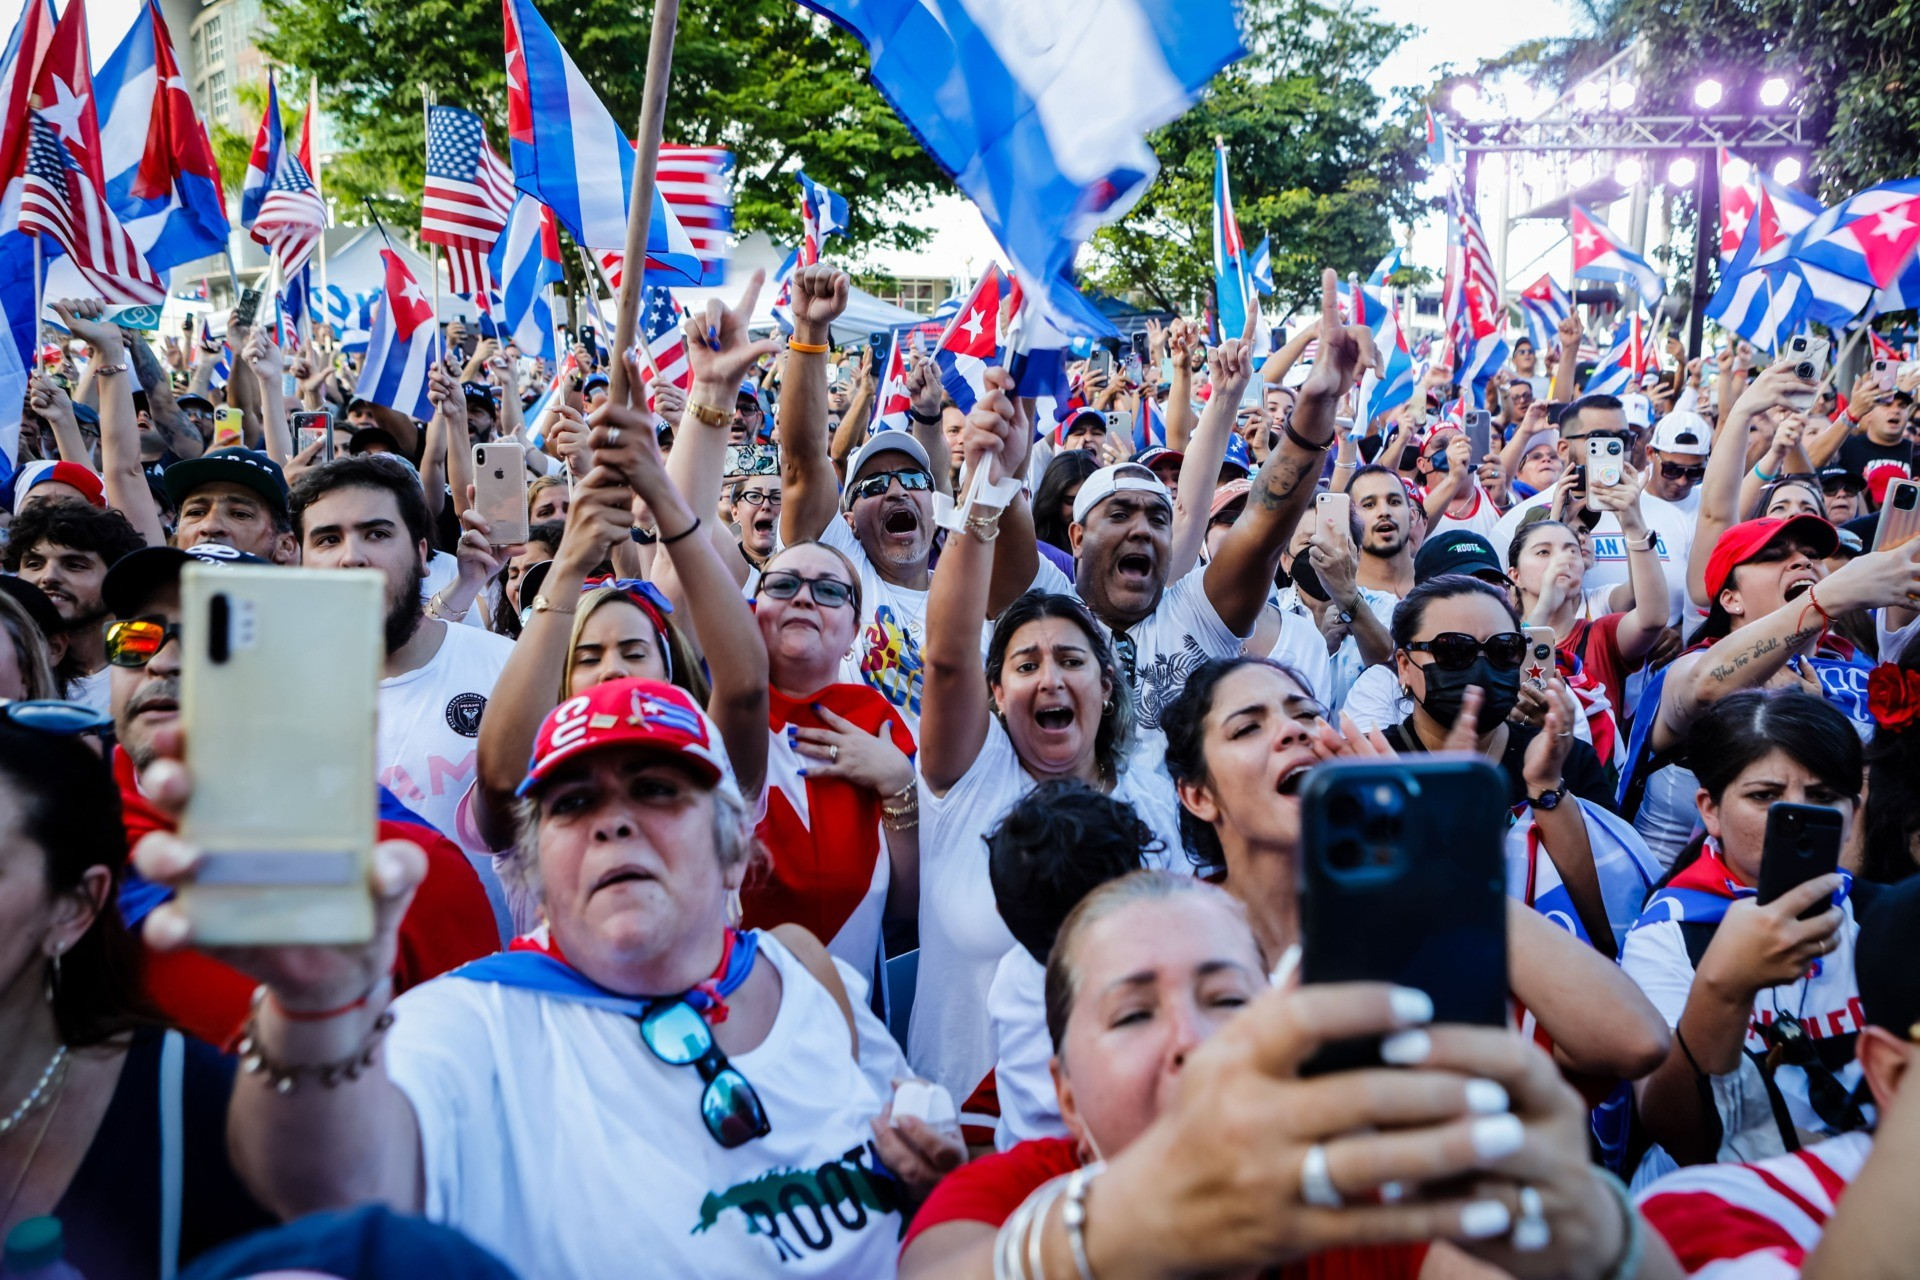 People wave Cuban and US flags during a Freedom Rally showing support for Cubans demonstrating against their government, at Freedom Tower in Miami, on July 17, 2021. - Cuba's President Miguel Diaz-Canel on July 17, denounced what he said was a false narrative over unrest on the Caribbean island, as the Communist regime vigorously pushed back against suggestions of historically widespread discontent. (Photo by Eva Marie UZCATEGUI / AFP) (Photo by EVA MARIE UZCATEGUI/AFP via Getty Images)